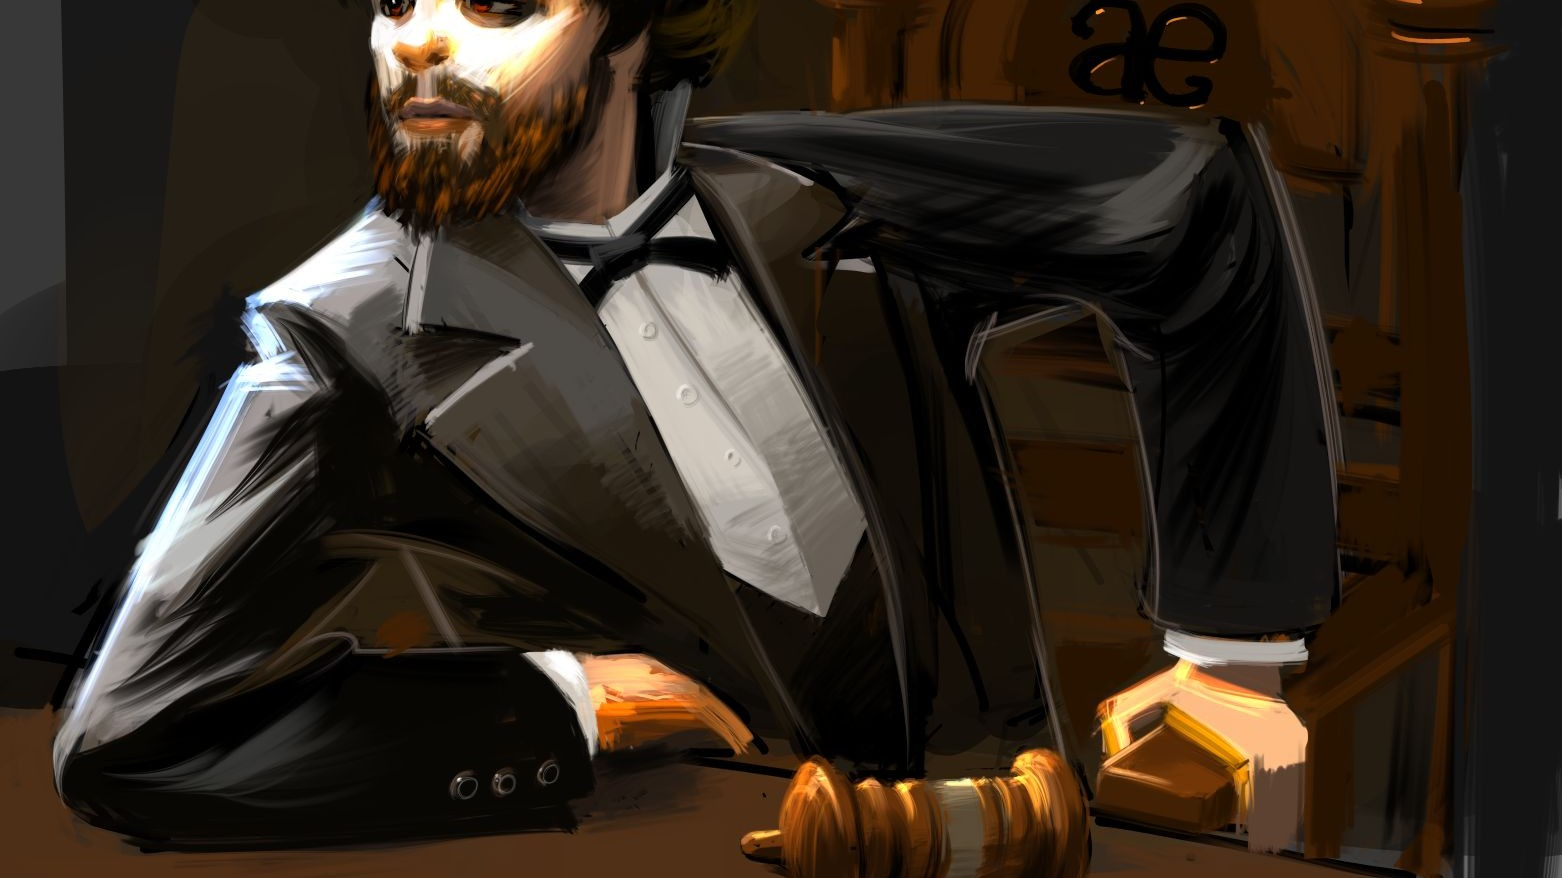 AT&T Hacker 'weev' Demands One Bitcoin for Each Hour He Spent in Jail